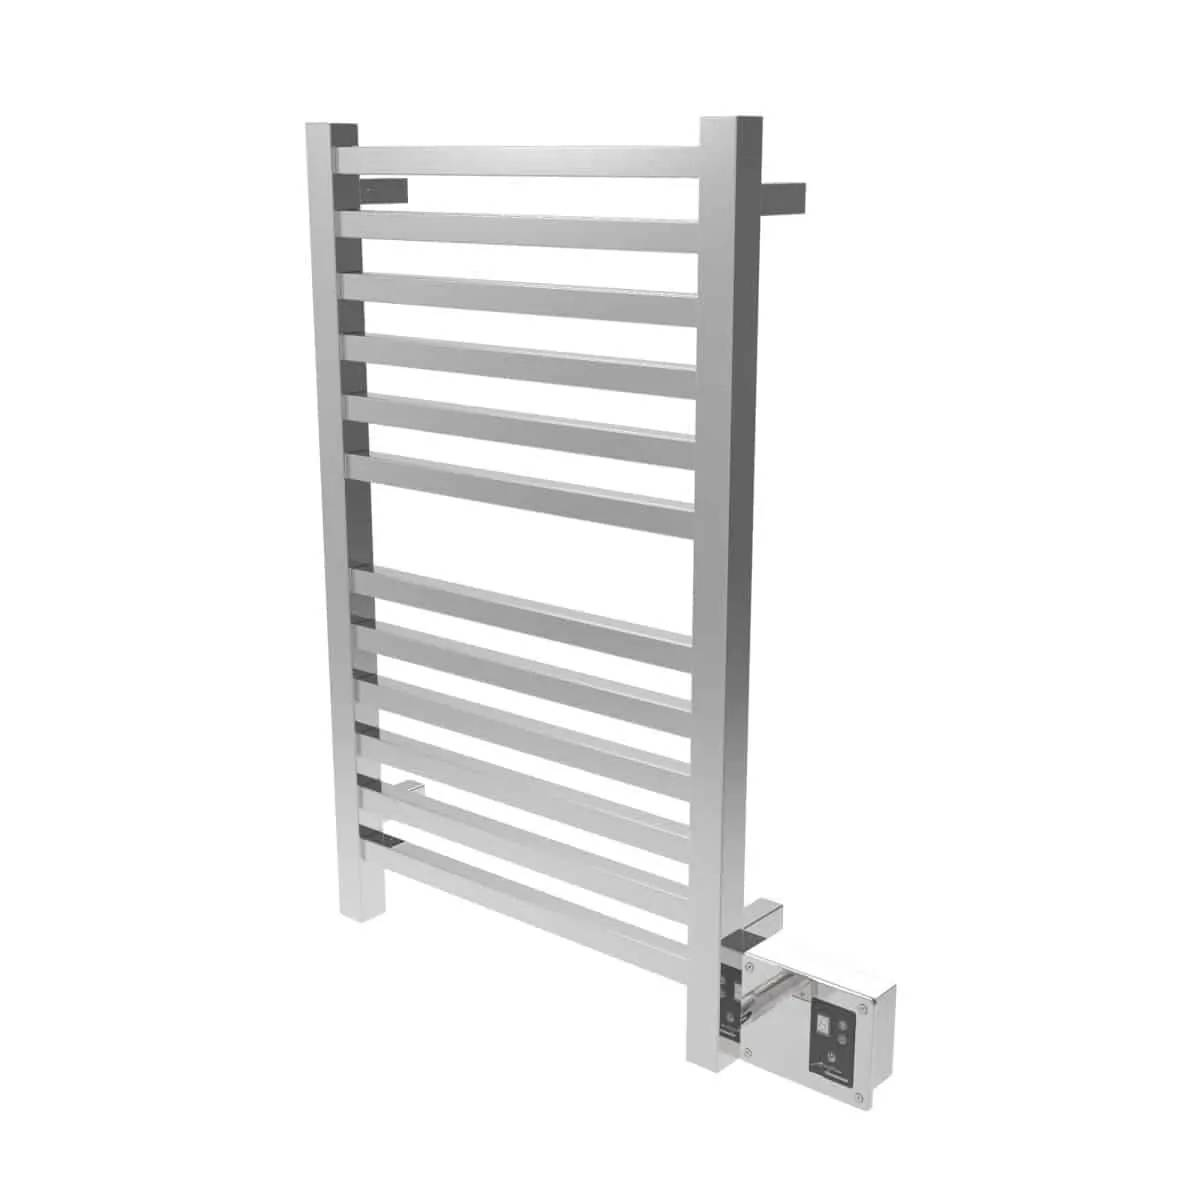 Amba Q2033P Quadro Heated Towel Rack - Polished